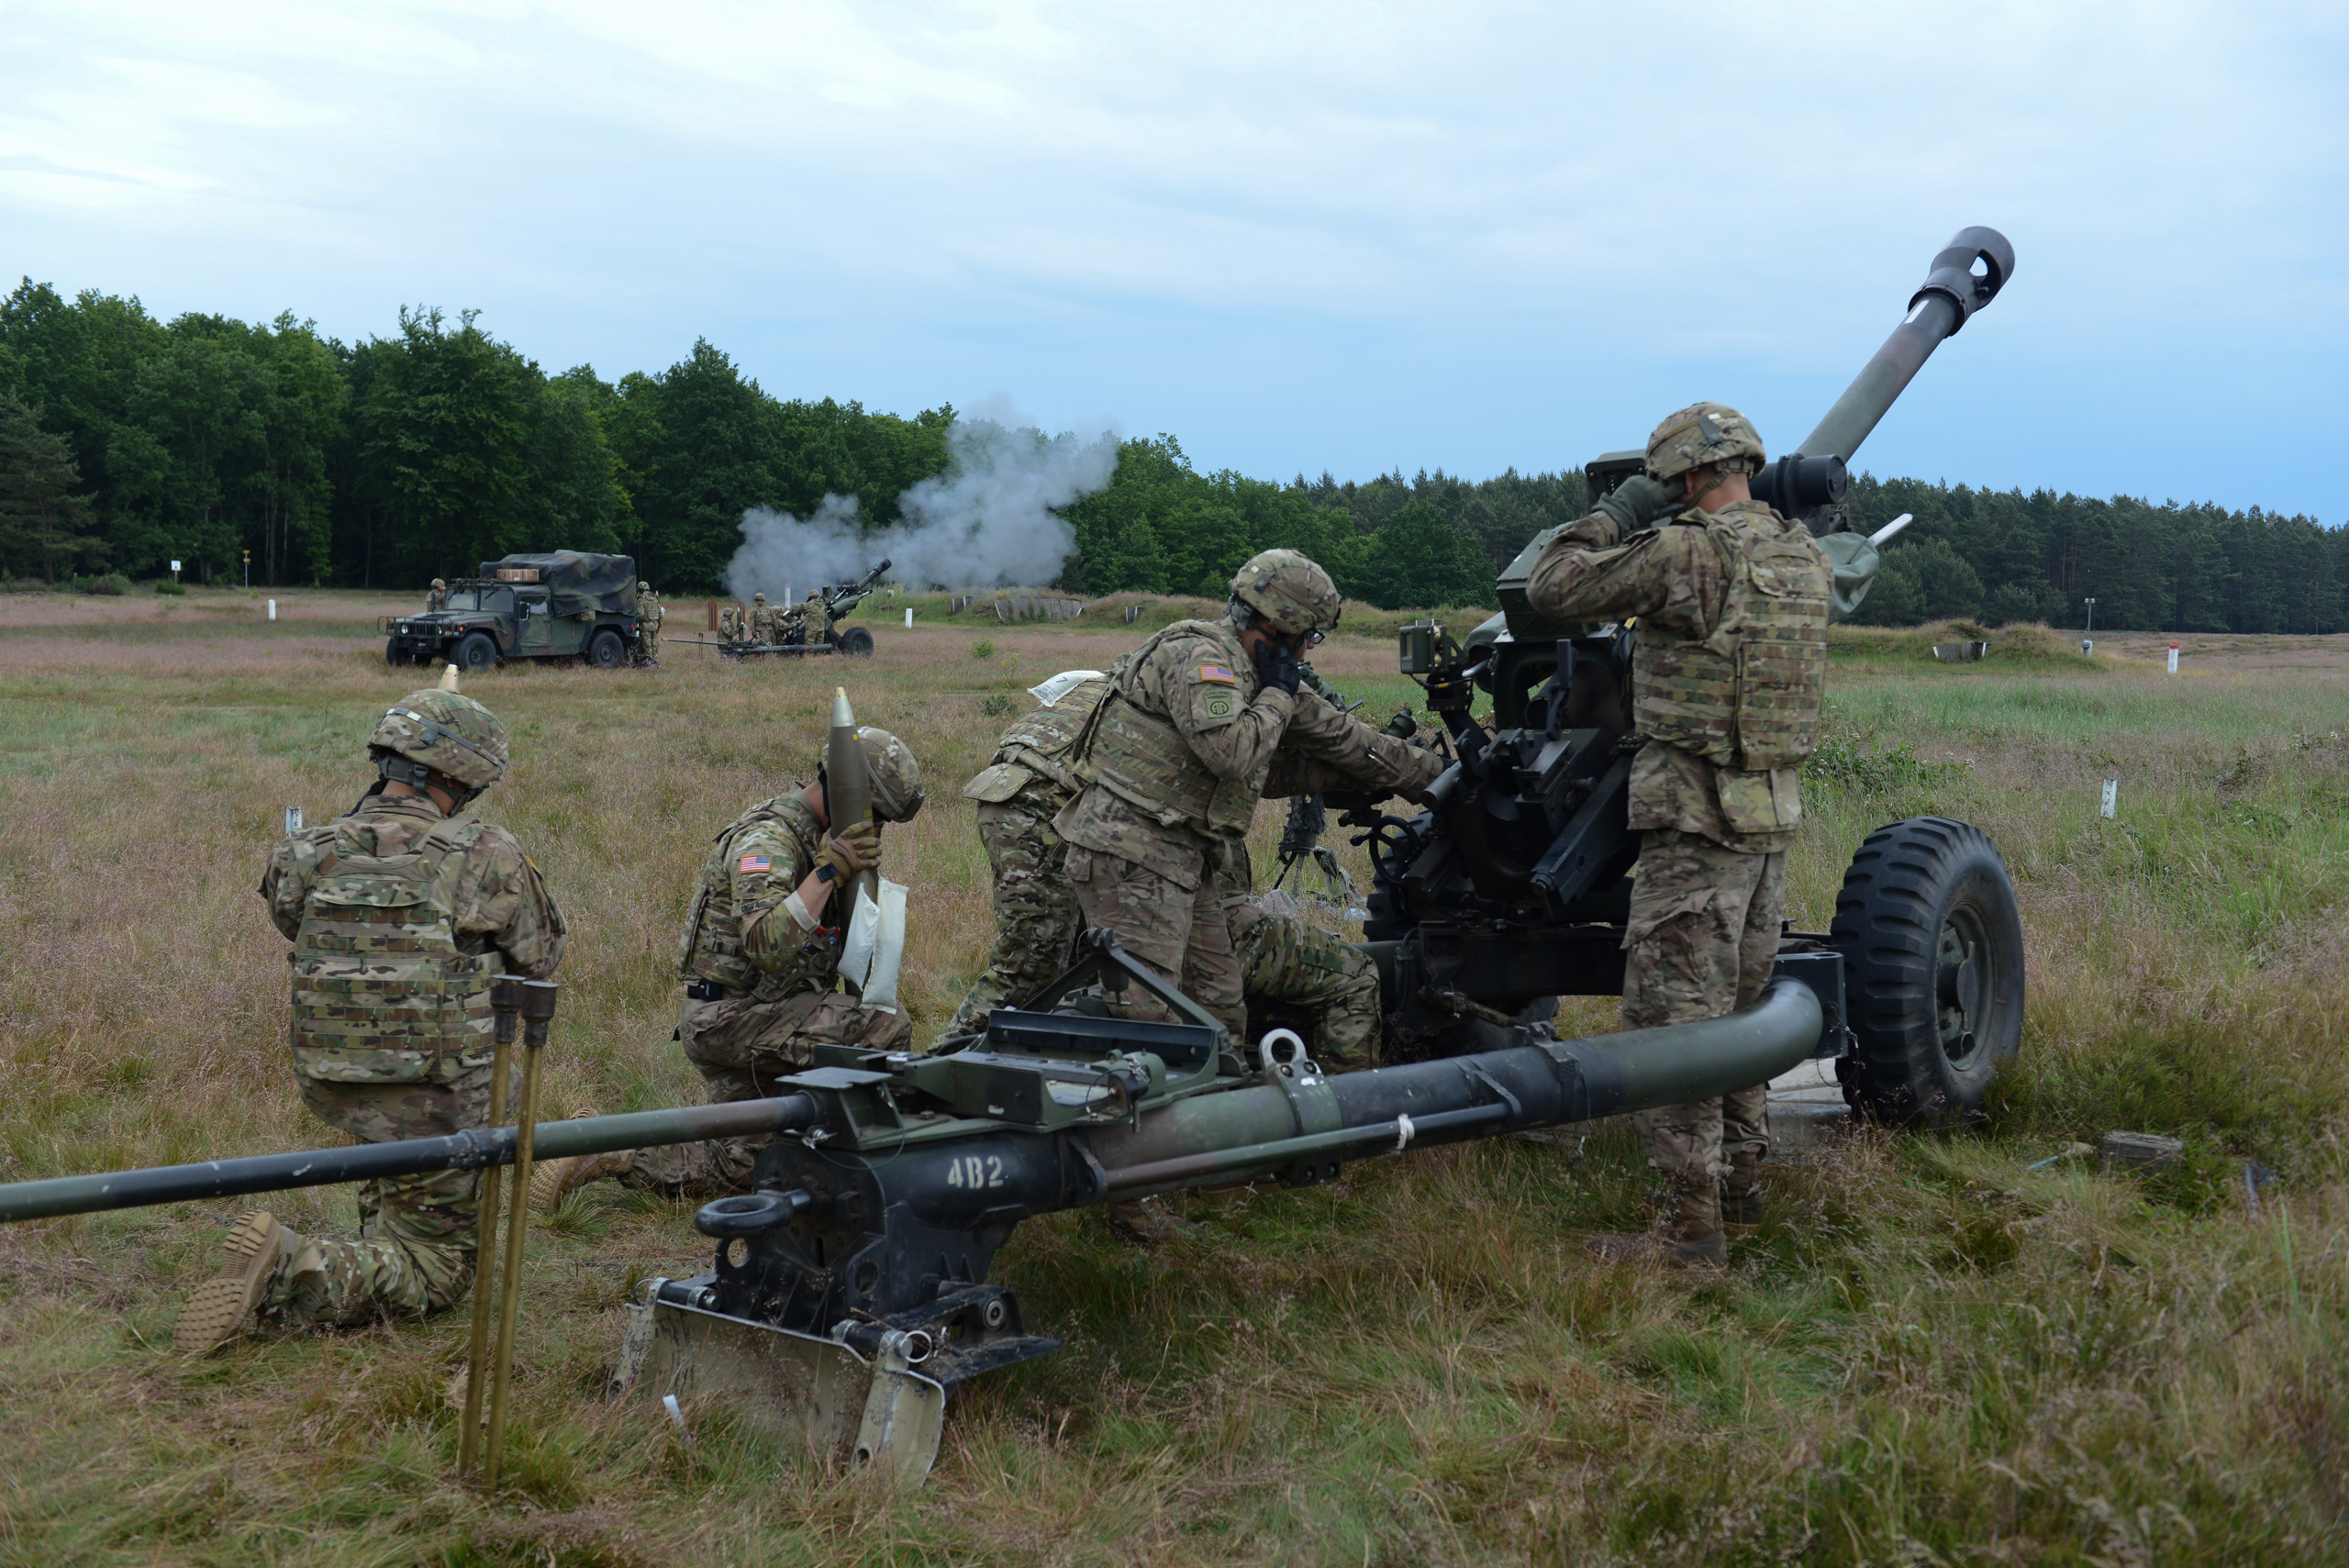 American soldiers with the 173rd Airborne load and fire an M119A3 howitzer at the Drawsko Pomorskie Training Area in Poland on June 18, 2015.